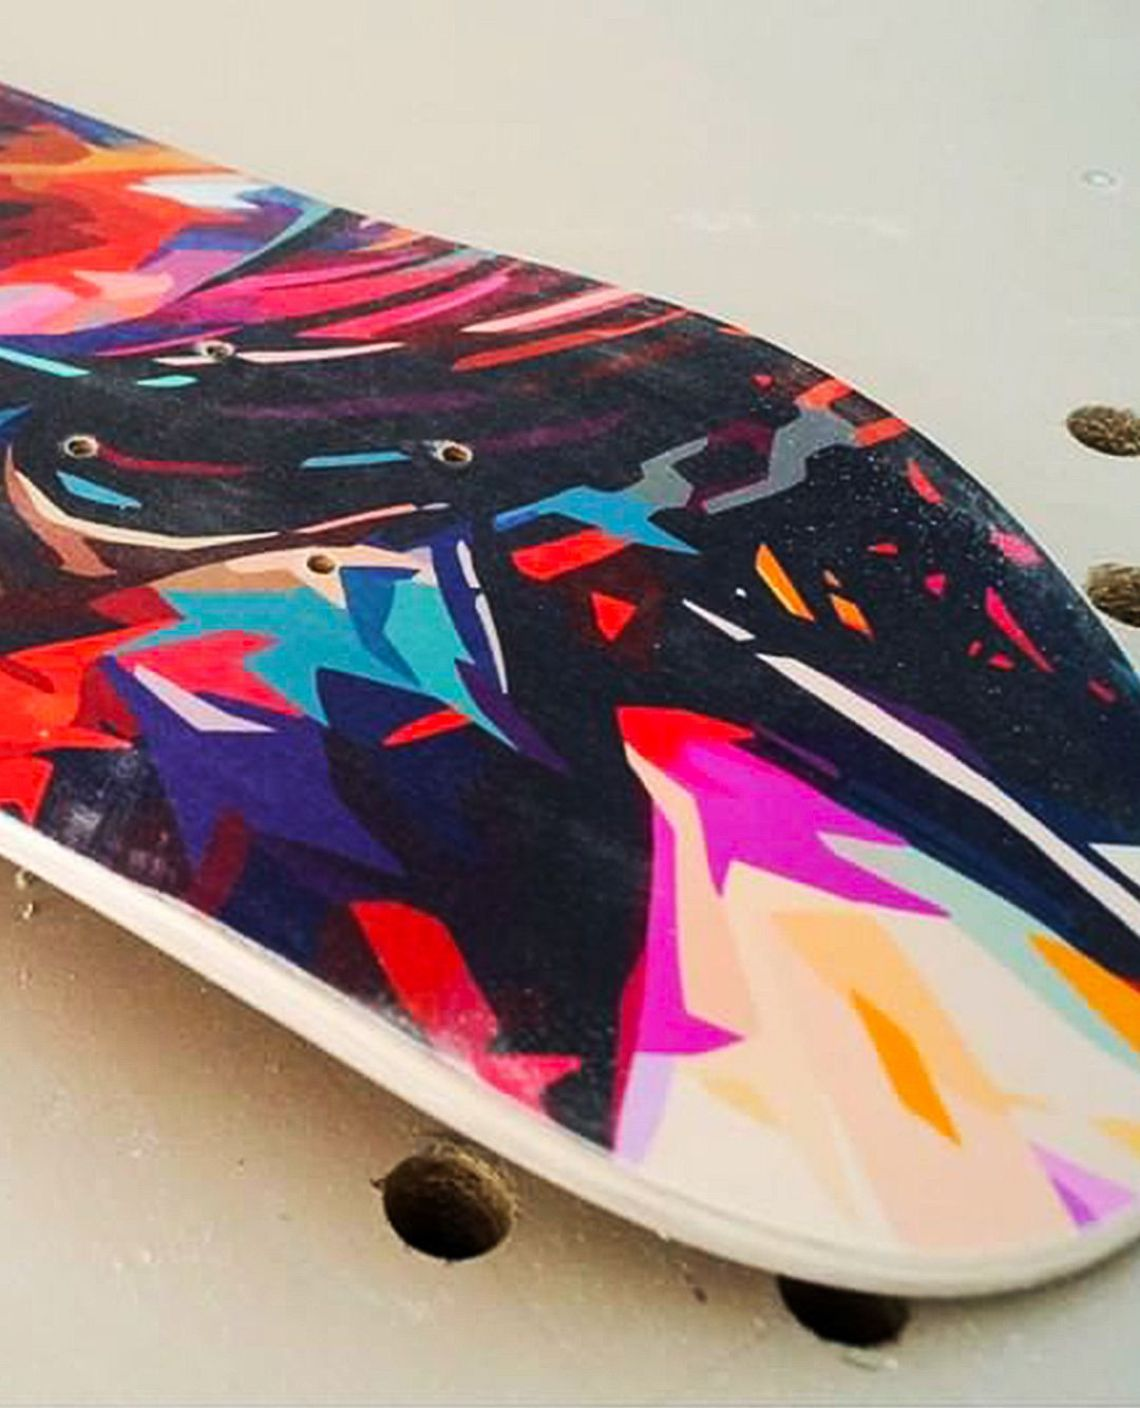 Droid Father Soldier Skateboards By Kaneda X Bonobolabo 3